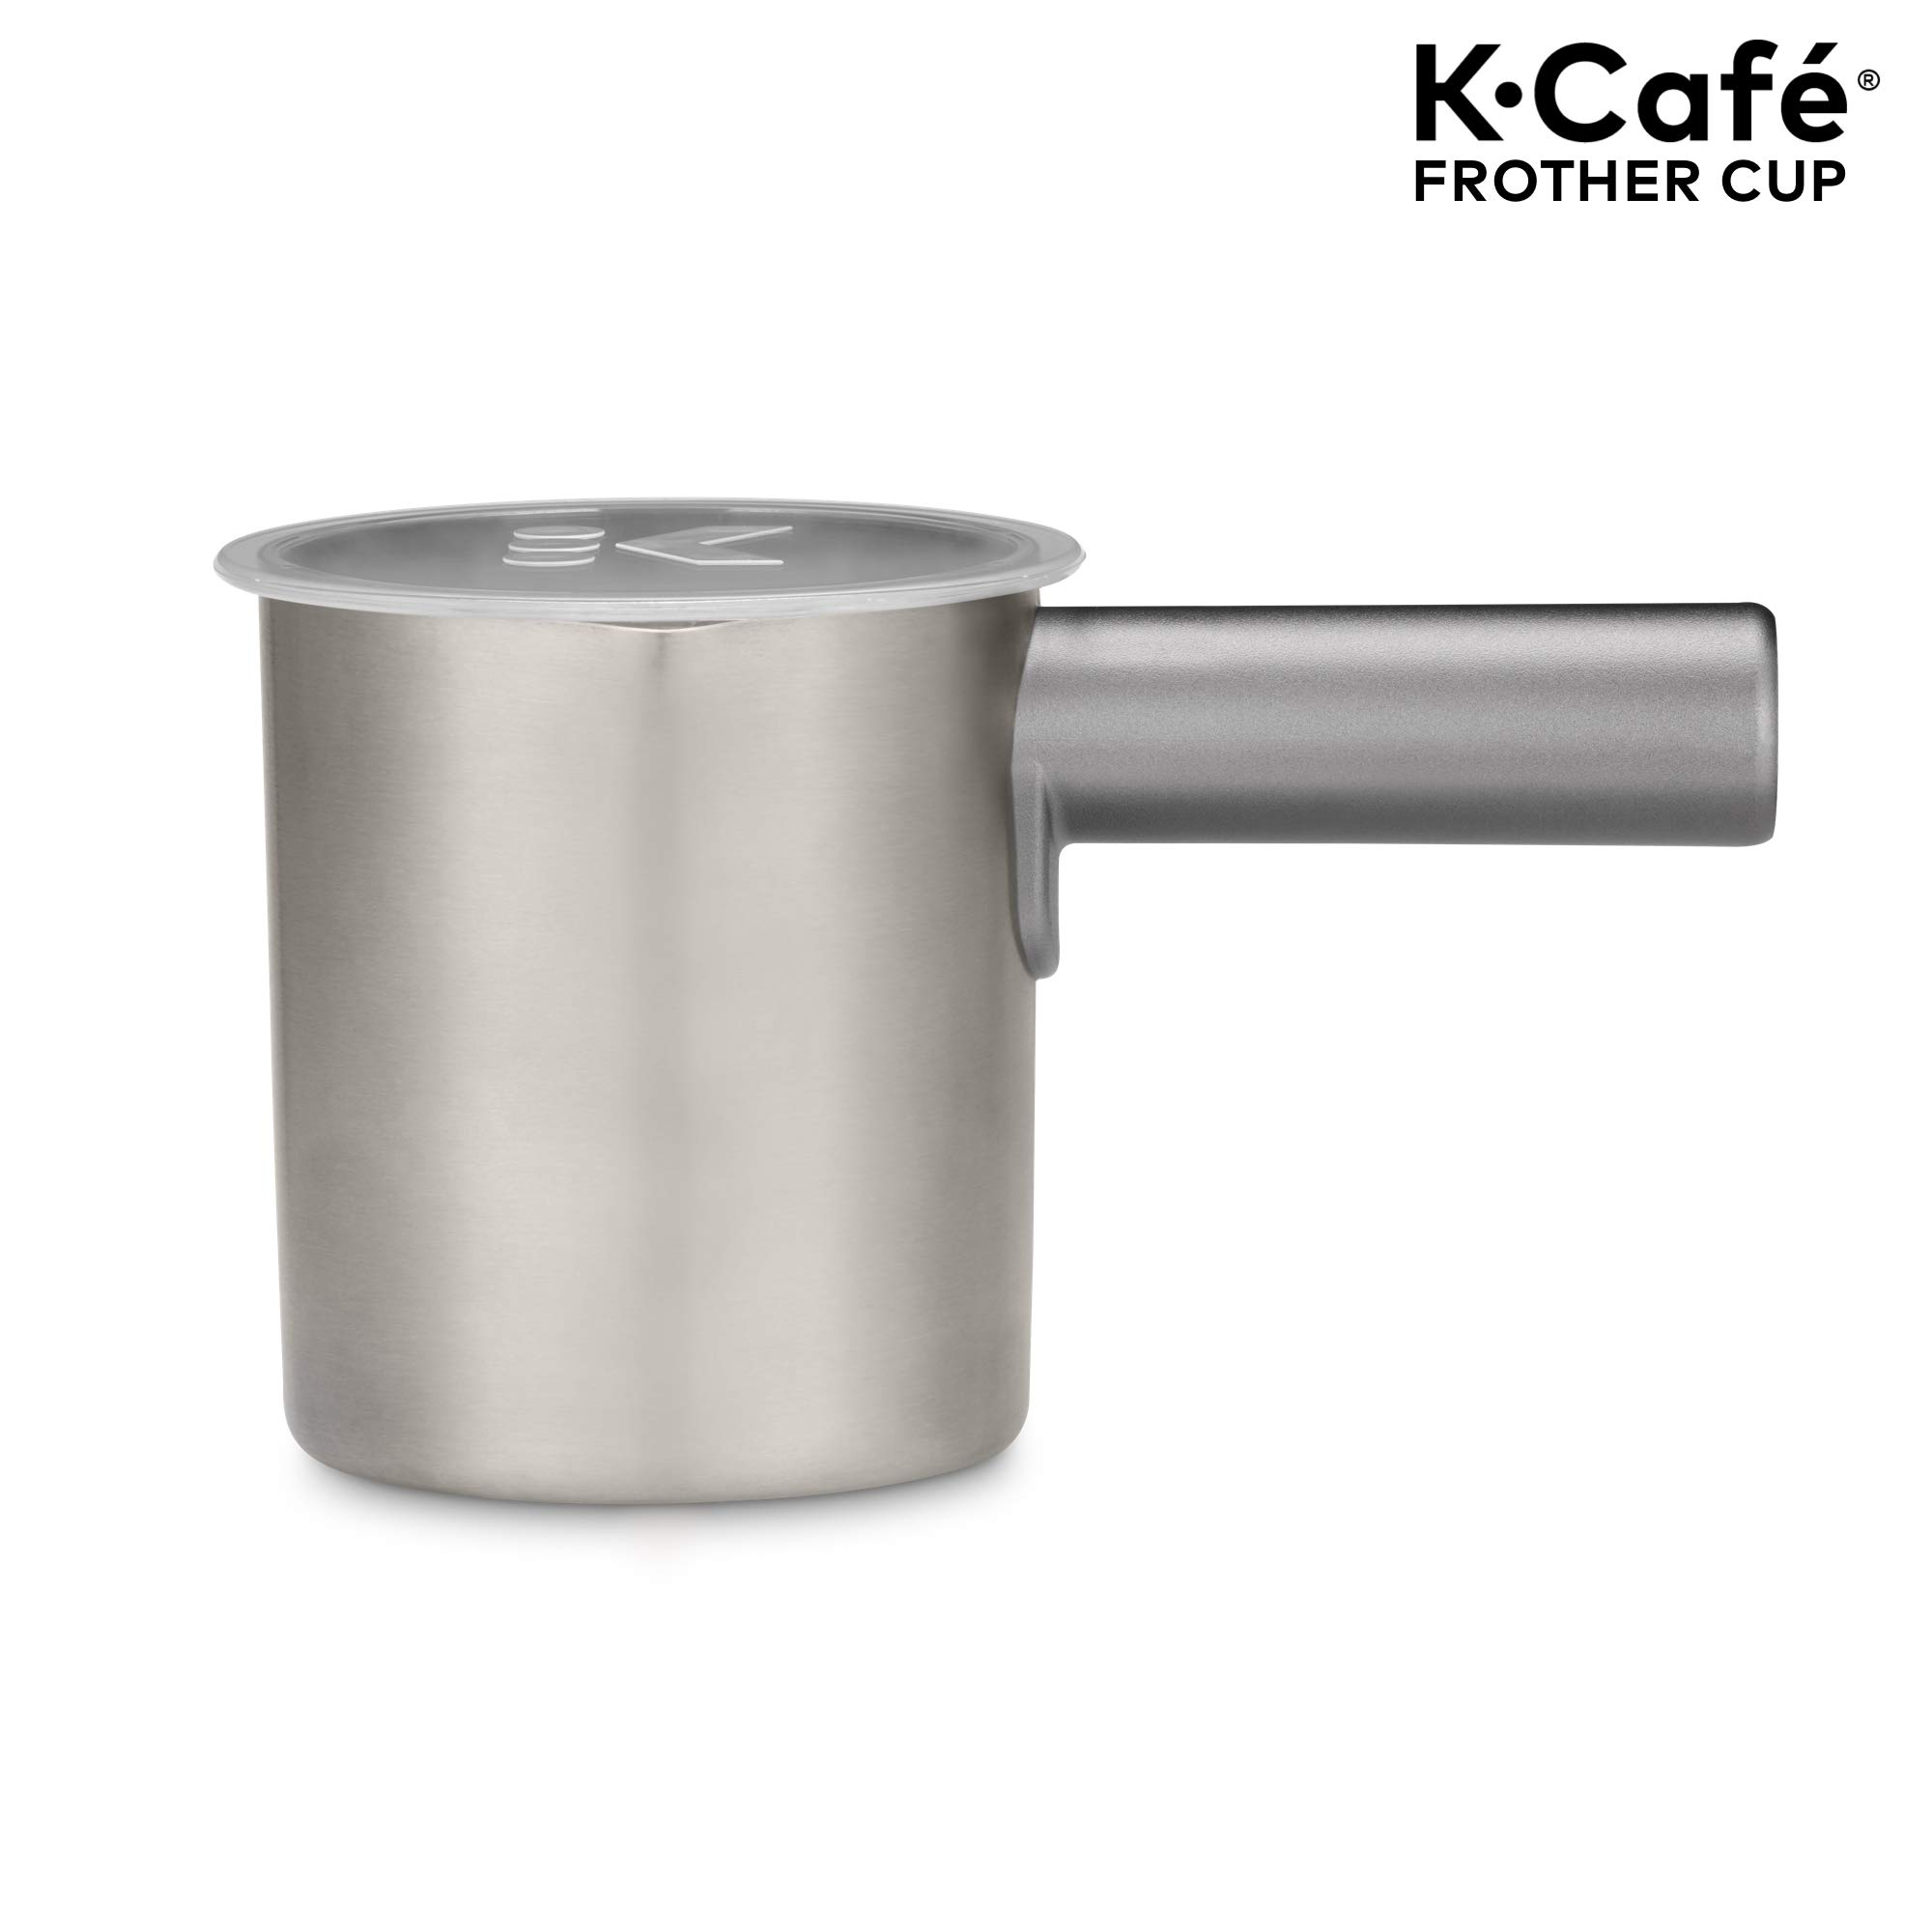 Keurig K-Café Milk Frother, Works with all Dairy and Non-Dairy Milk, Hot and Cold Frothing, Compatible with Keurig K-Café Coffee Makers Only, Nickel